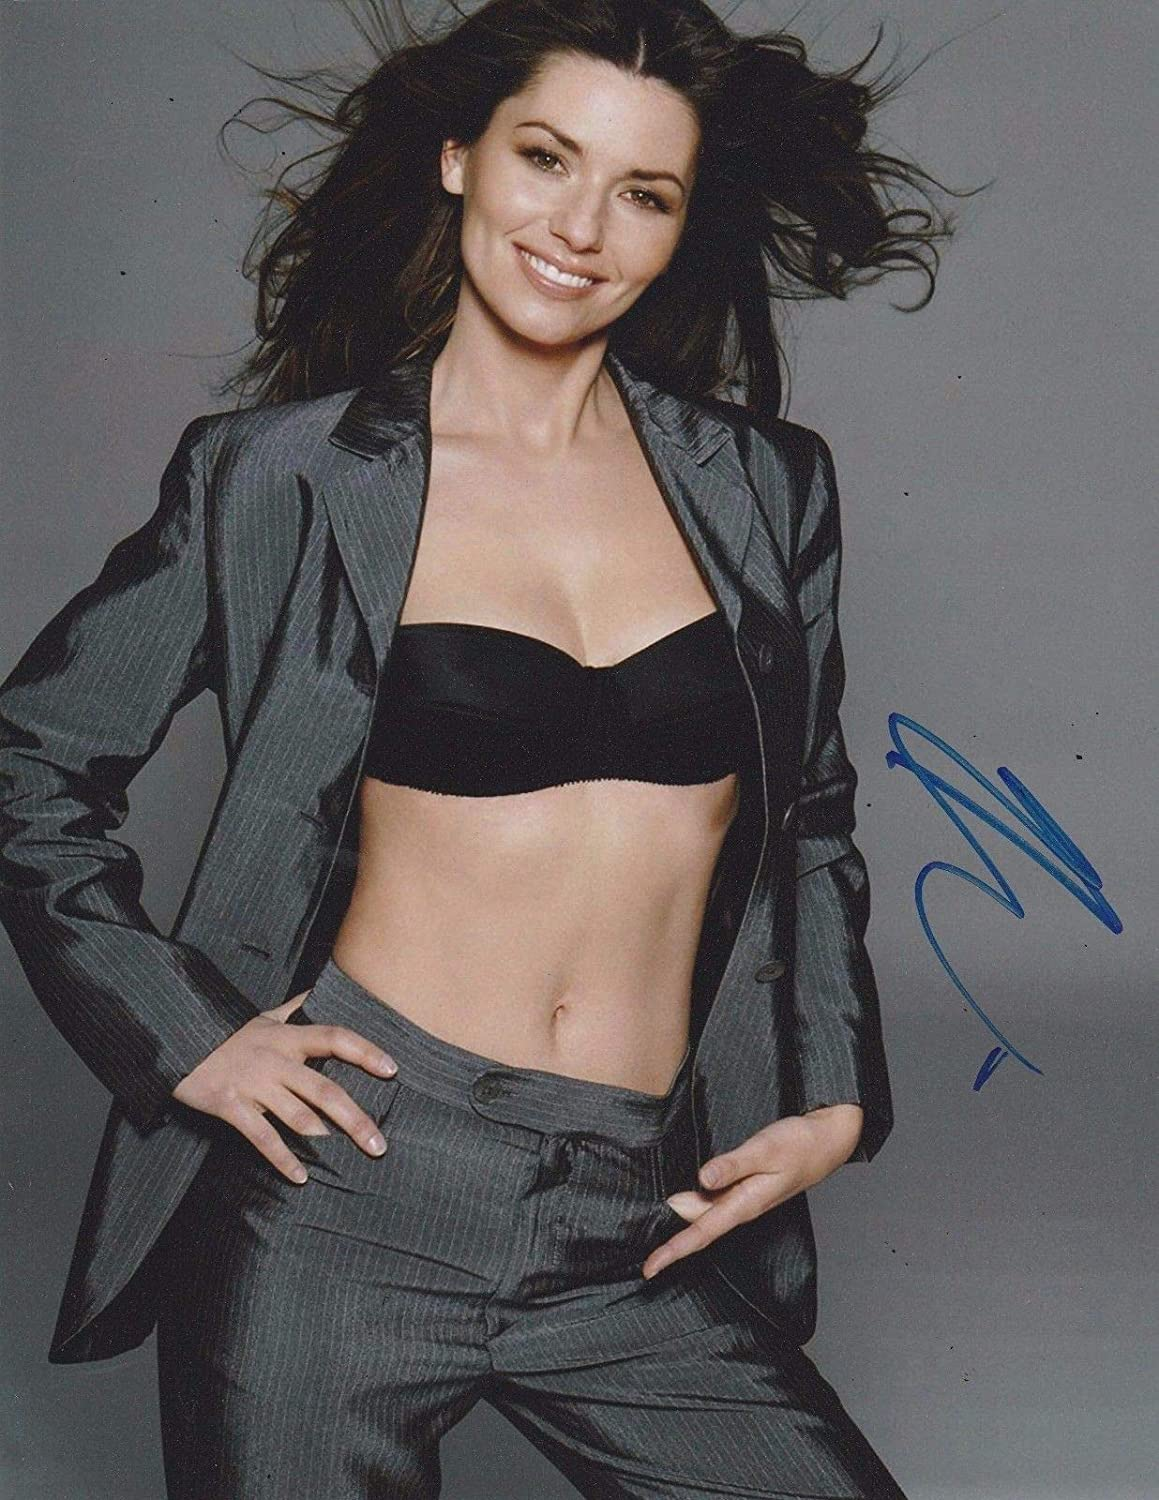 Shania Twain Autograph Signed 8 x 10 Photo